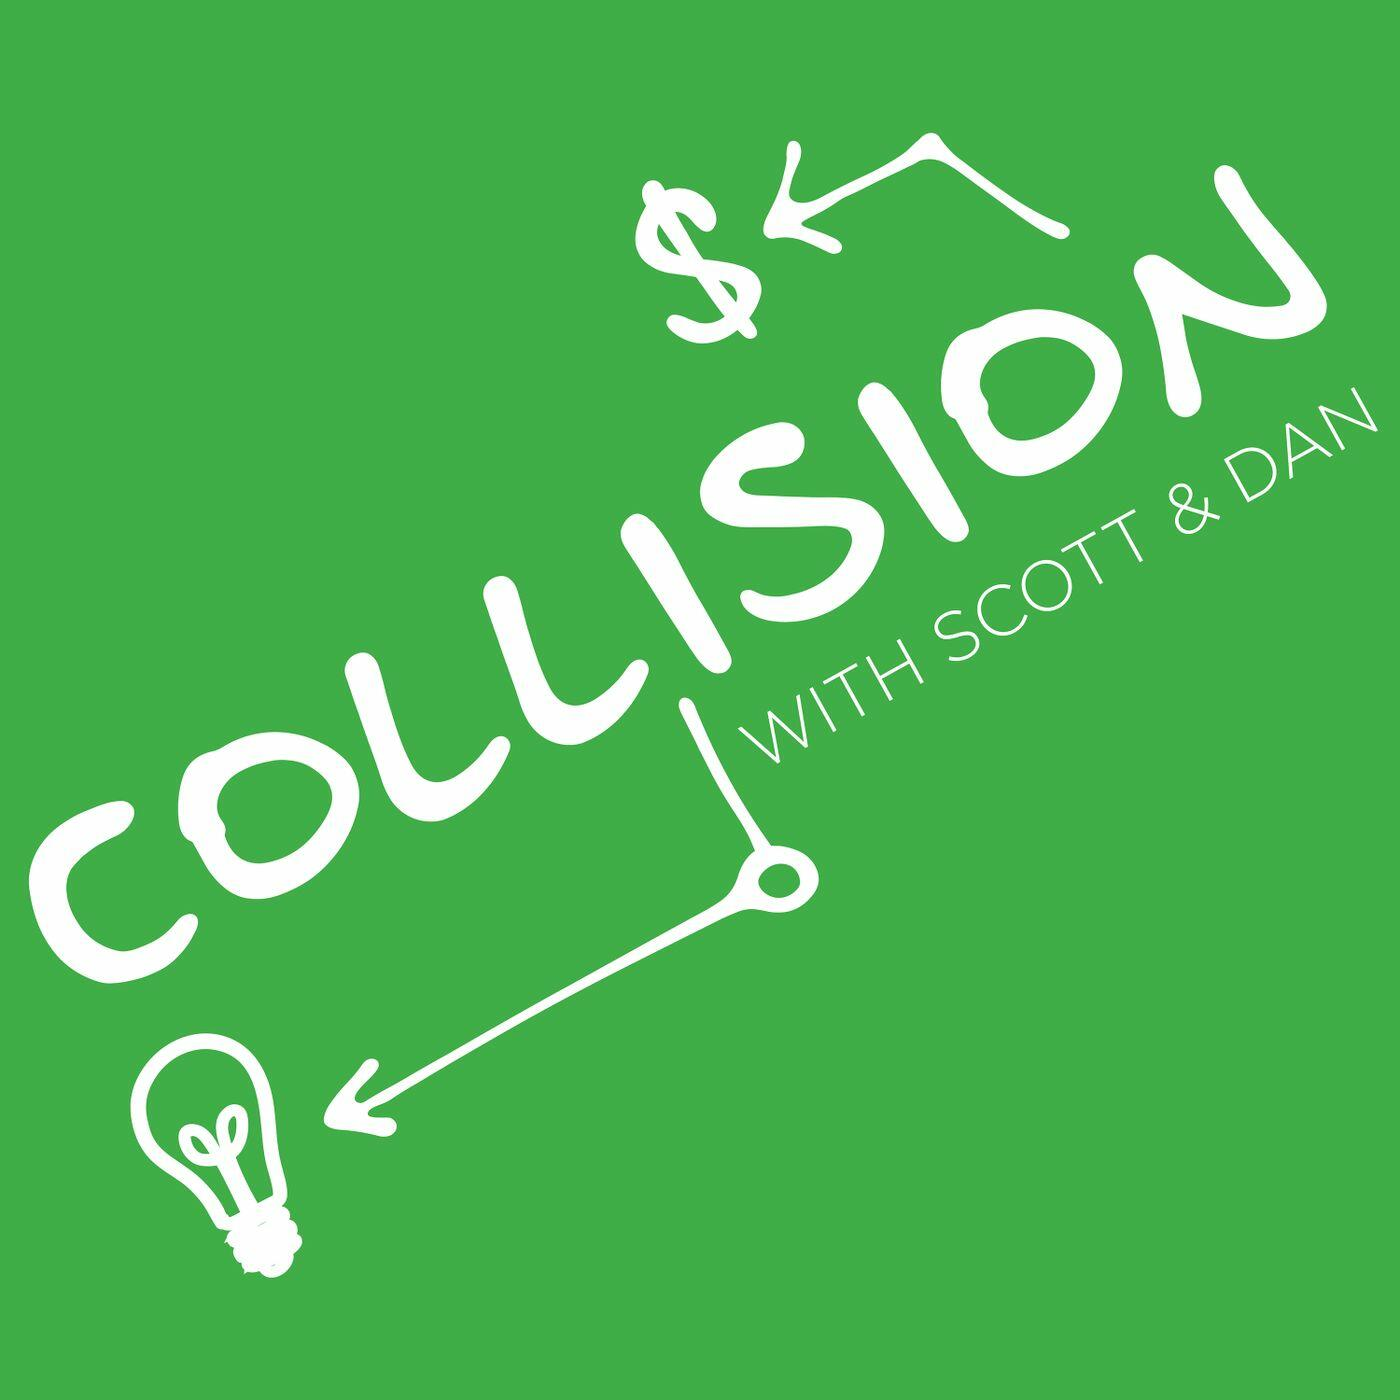 Listen to EPISODE 11 AJ Scola Assistant Director of Farm Personnel for the Atlanta Braves | Collision. With Scott & Dan. | Podcasts